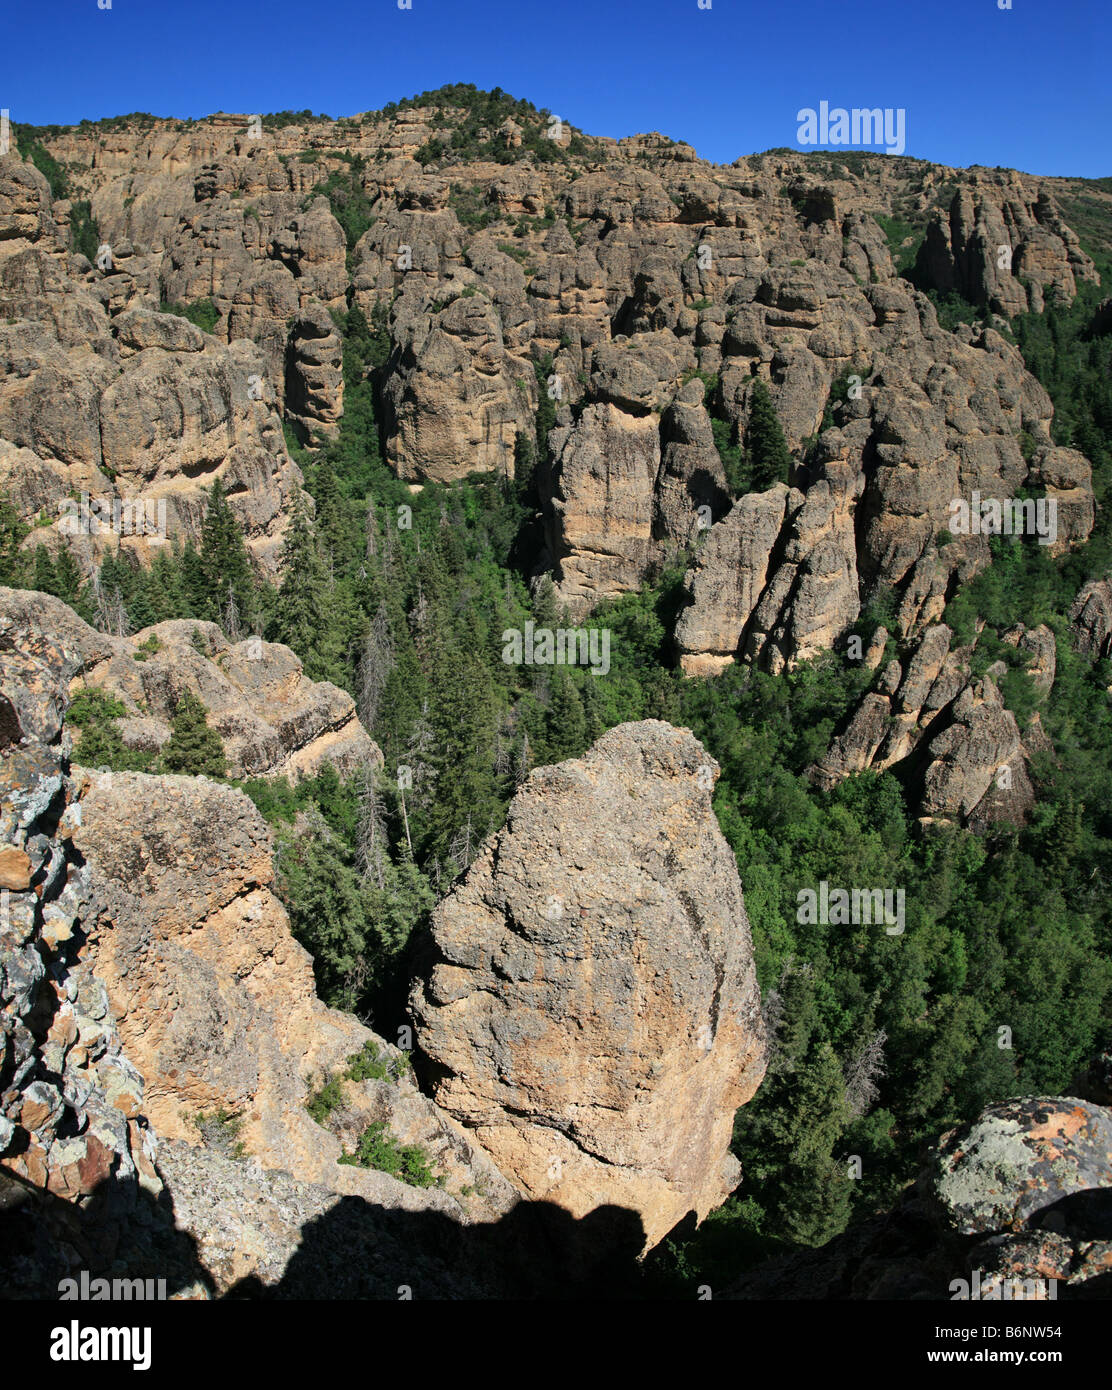 vertical wide angle image of conglomerate rock spires in Maple Canyon Utah - Stock Image